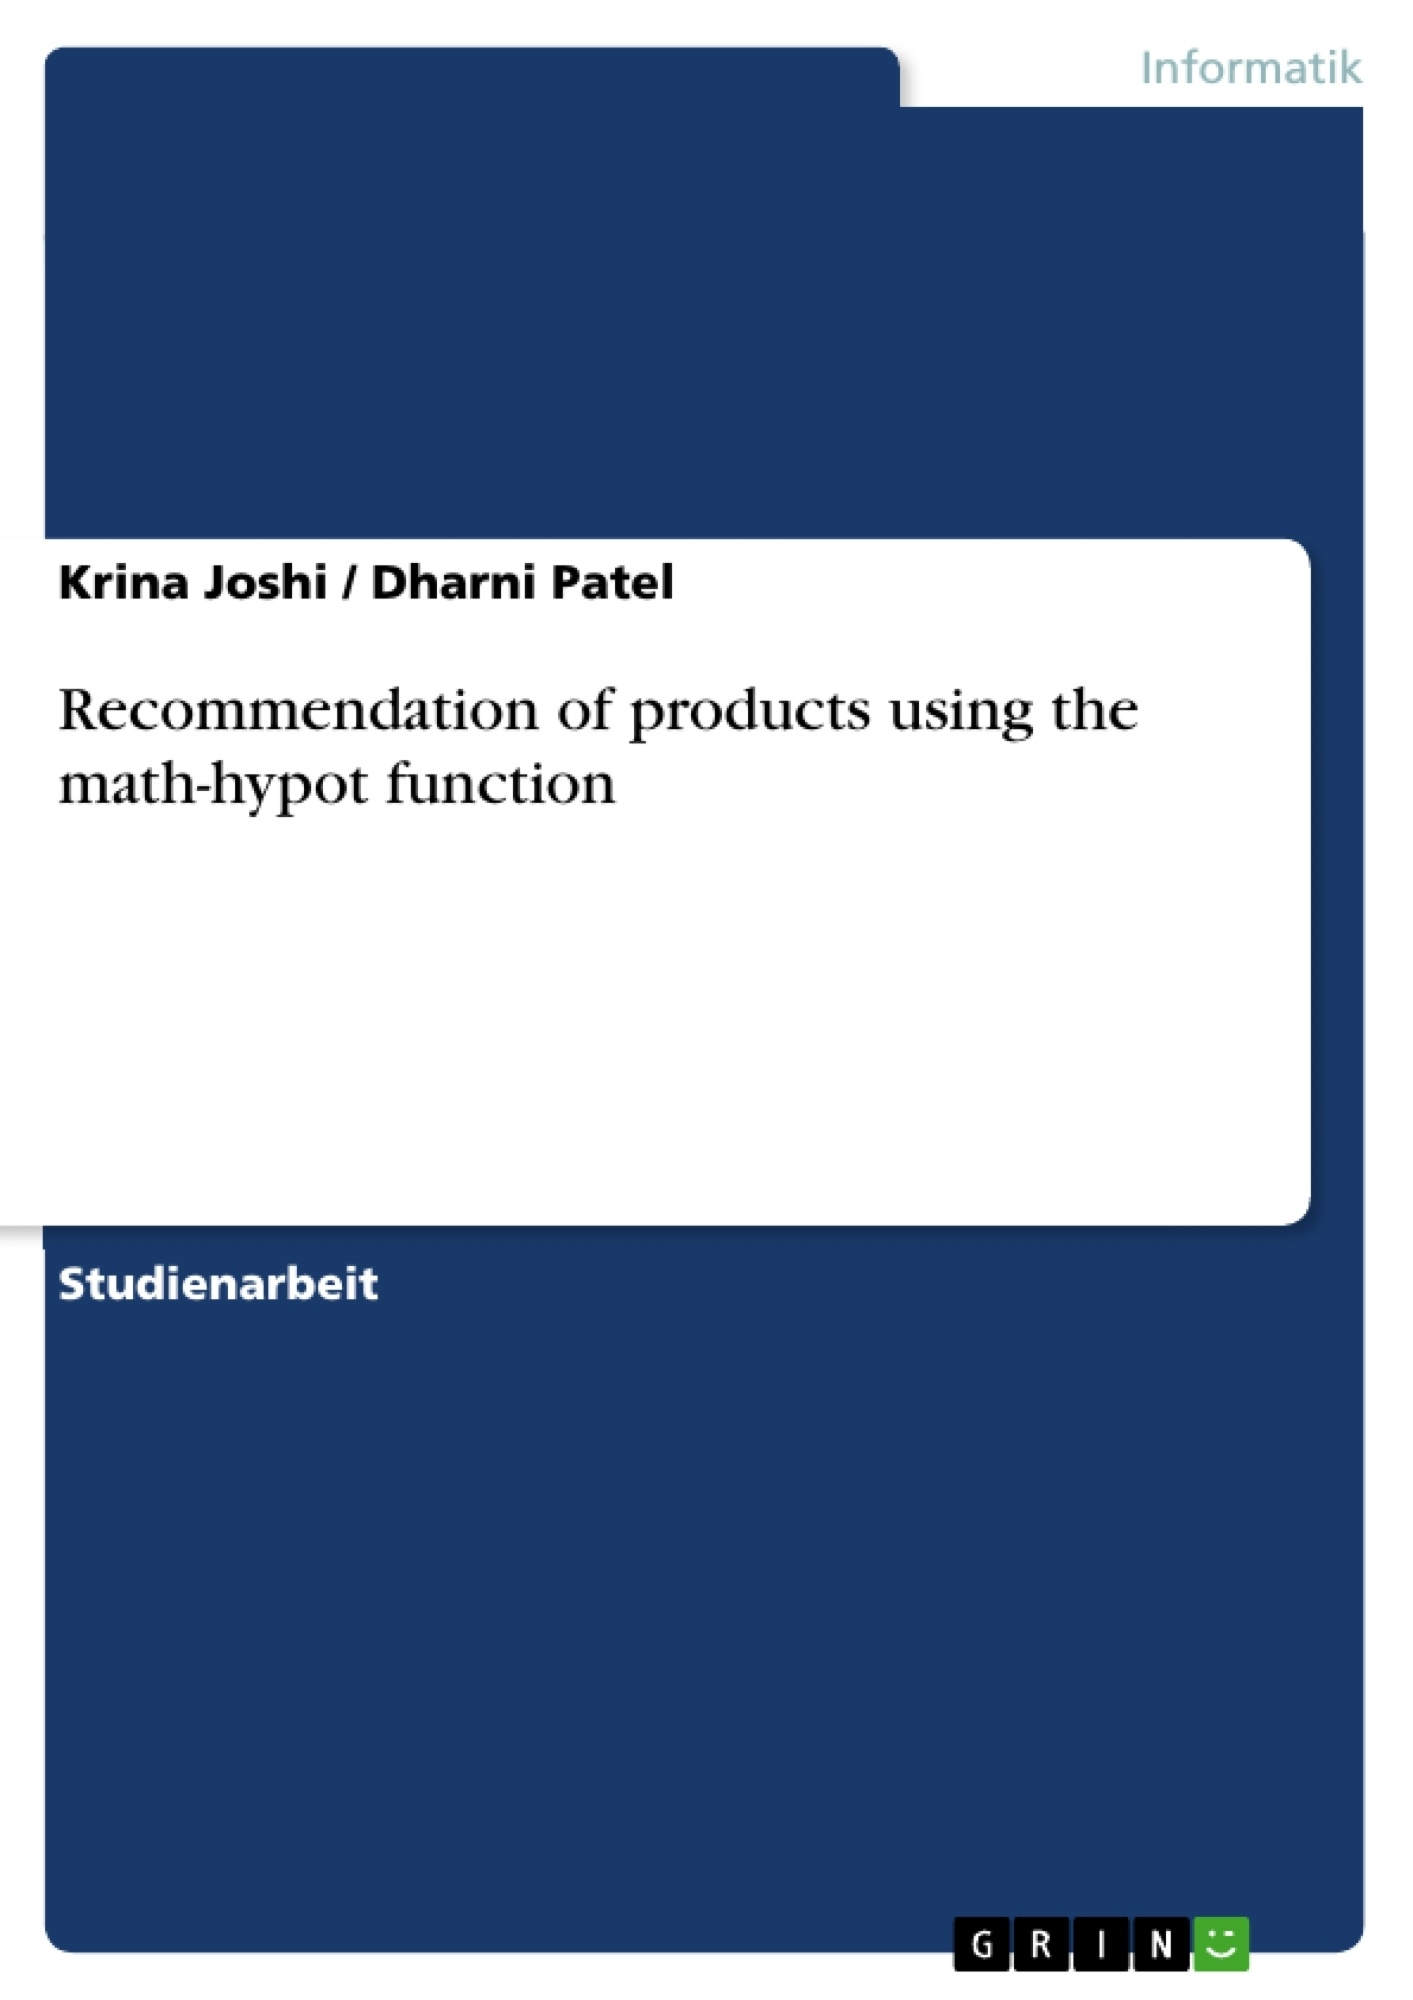 Titel: Recommendation of products using the math-hypot function